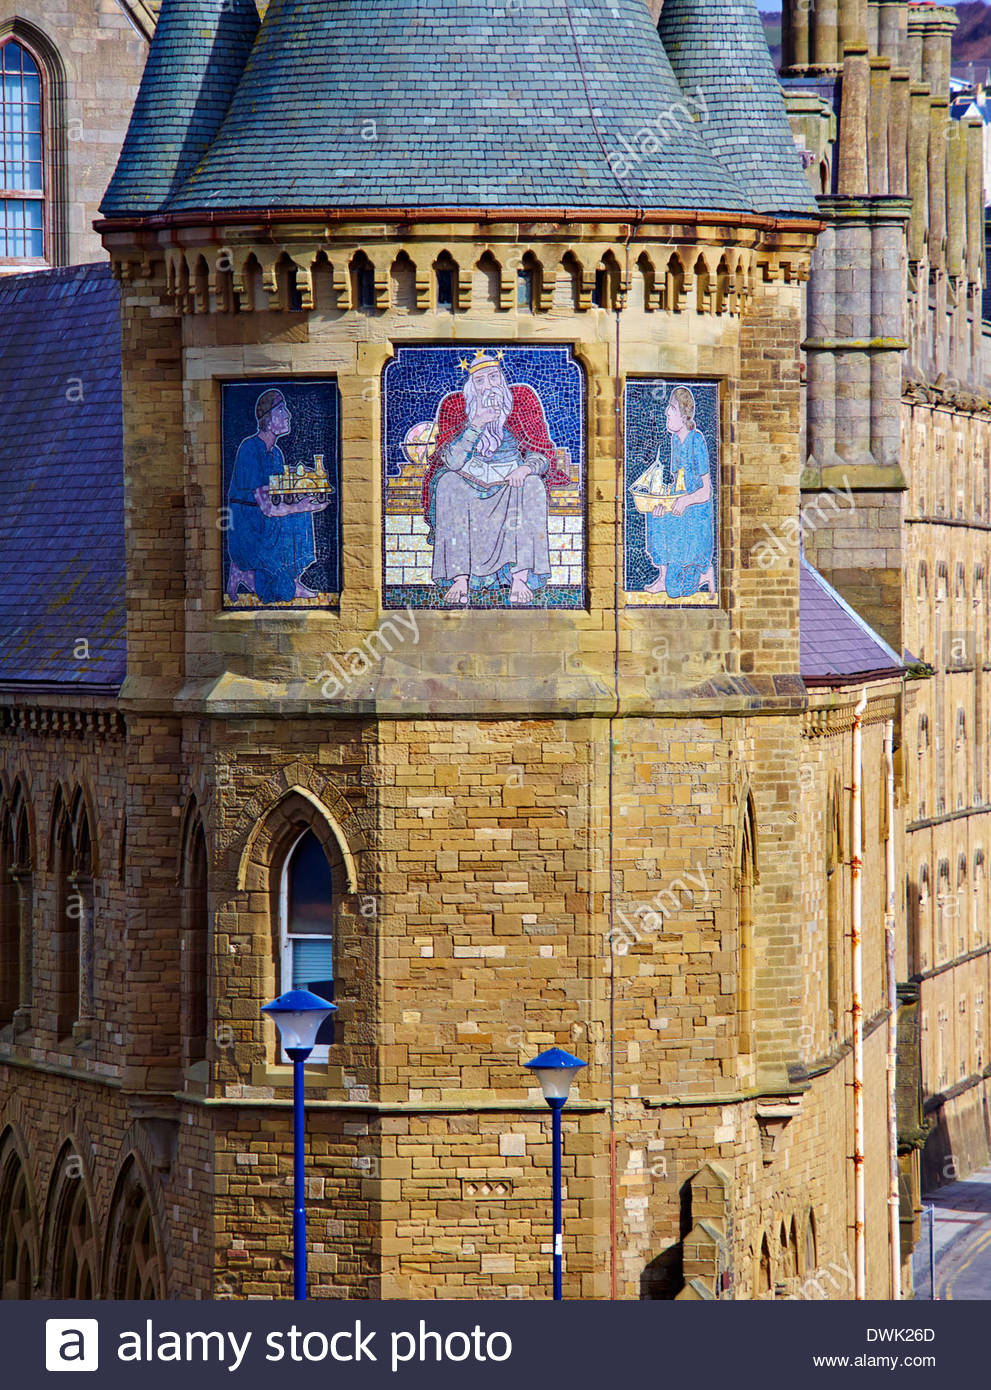 aberystwyth university college with mosaics of archimedes on the south tower in cardiganshire mid wales uk - Stock Image